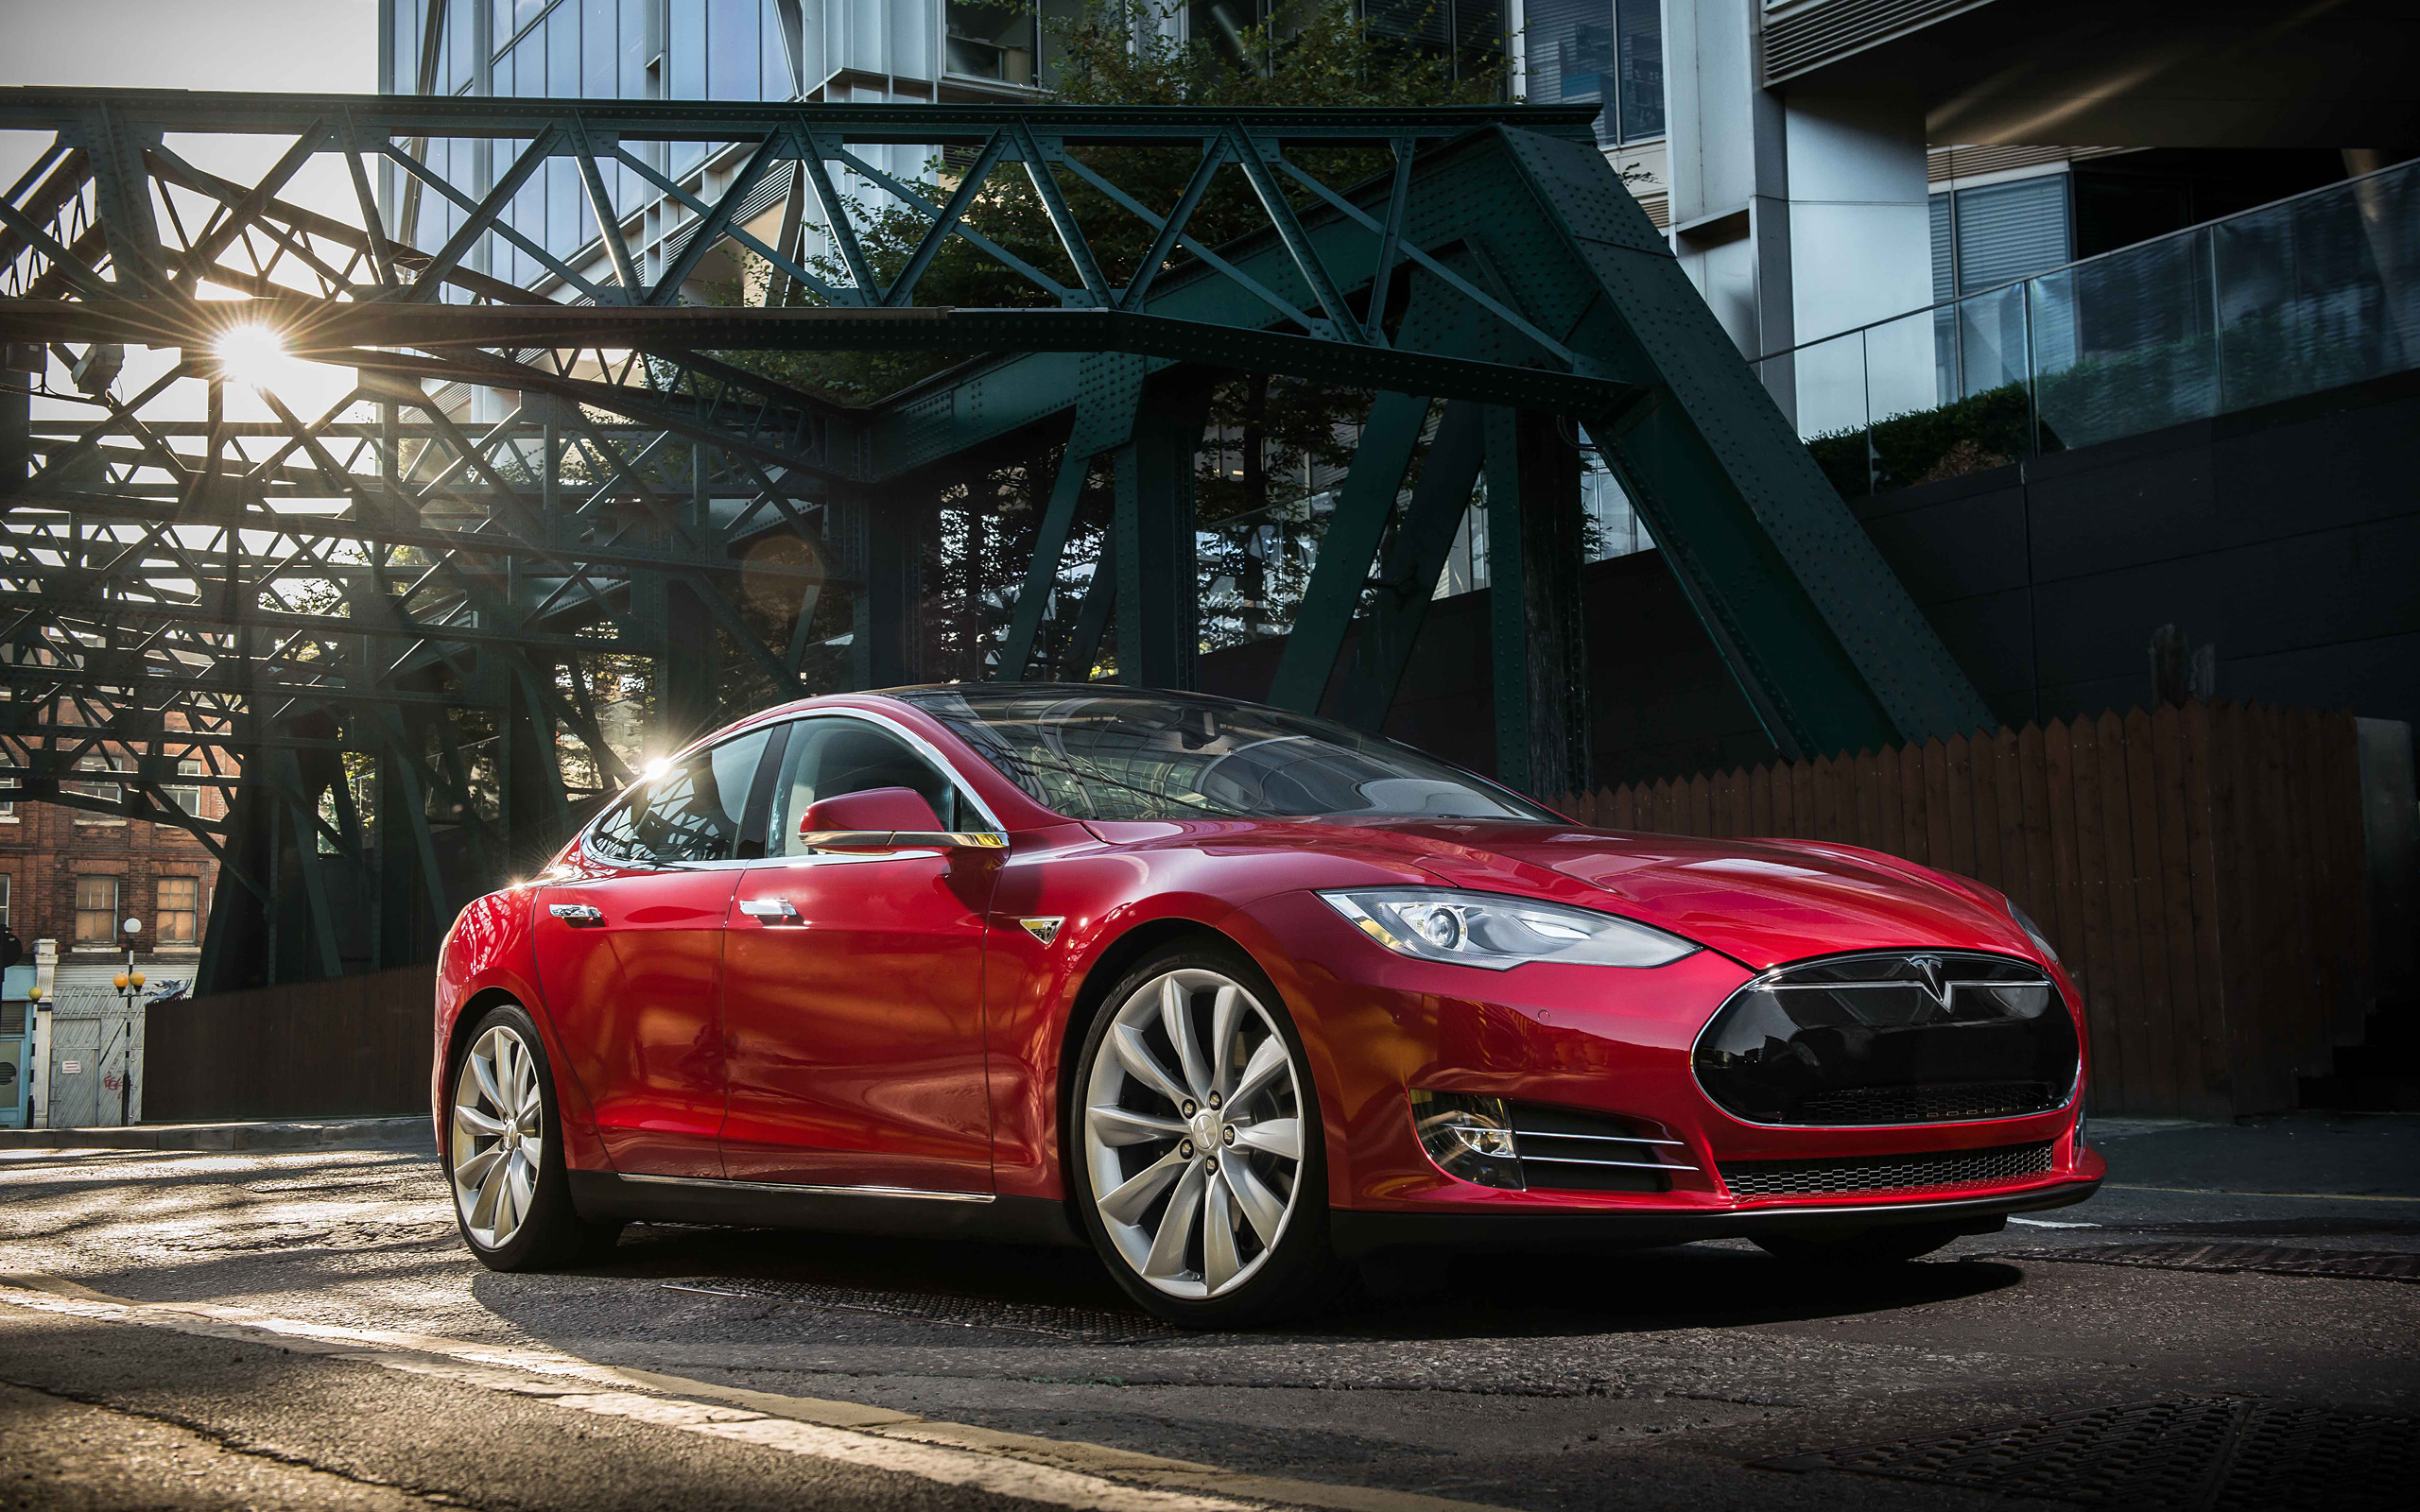 tesla model s wallpapers high quality download free. Black Bedroom Furniture Sets. Home Design Ideas